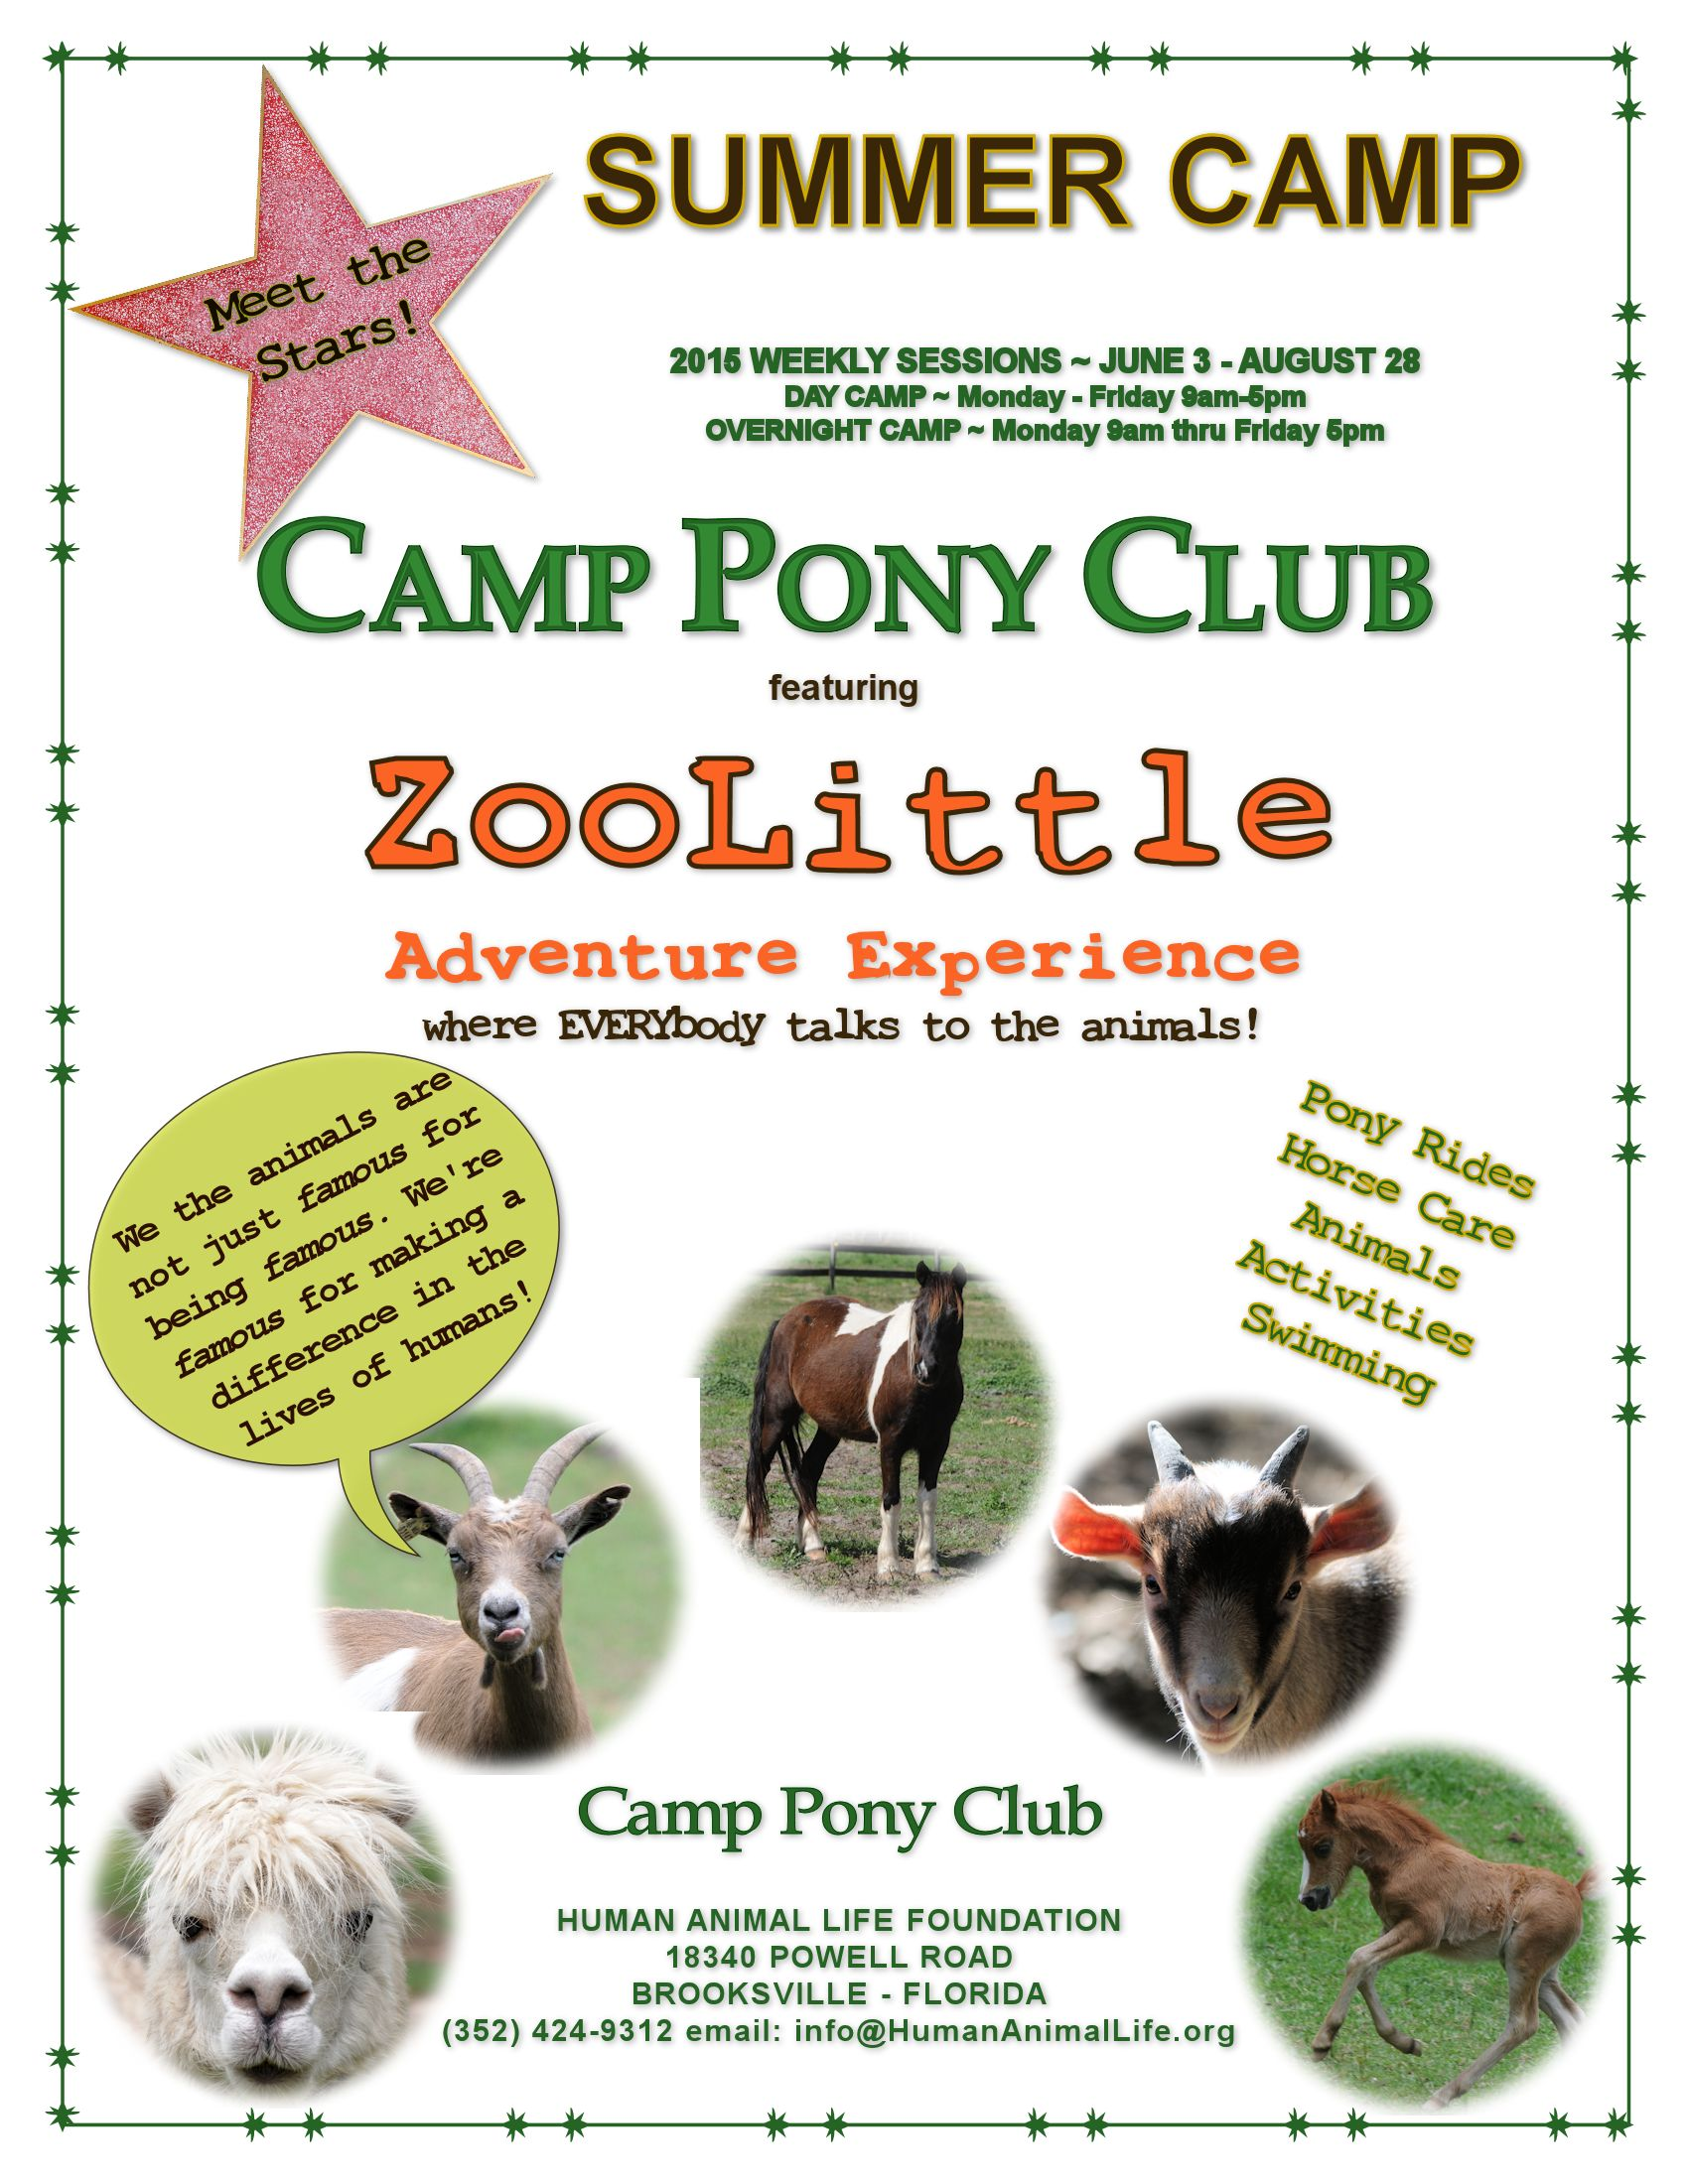 CAMP PONY CLUB FLYER 2015 #3